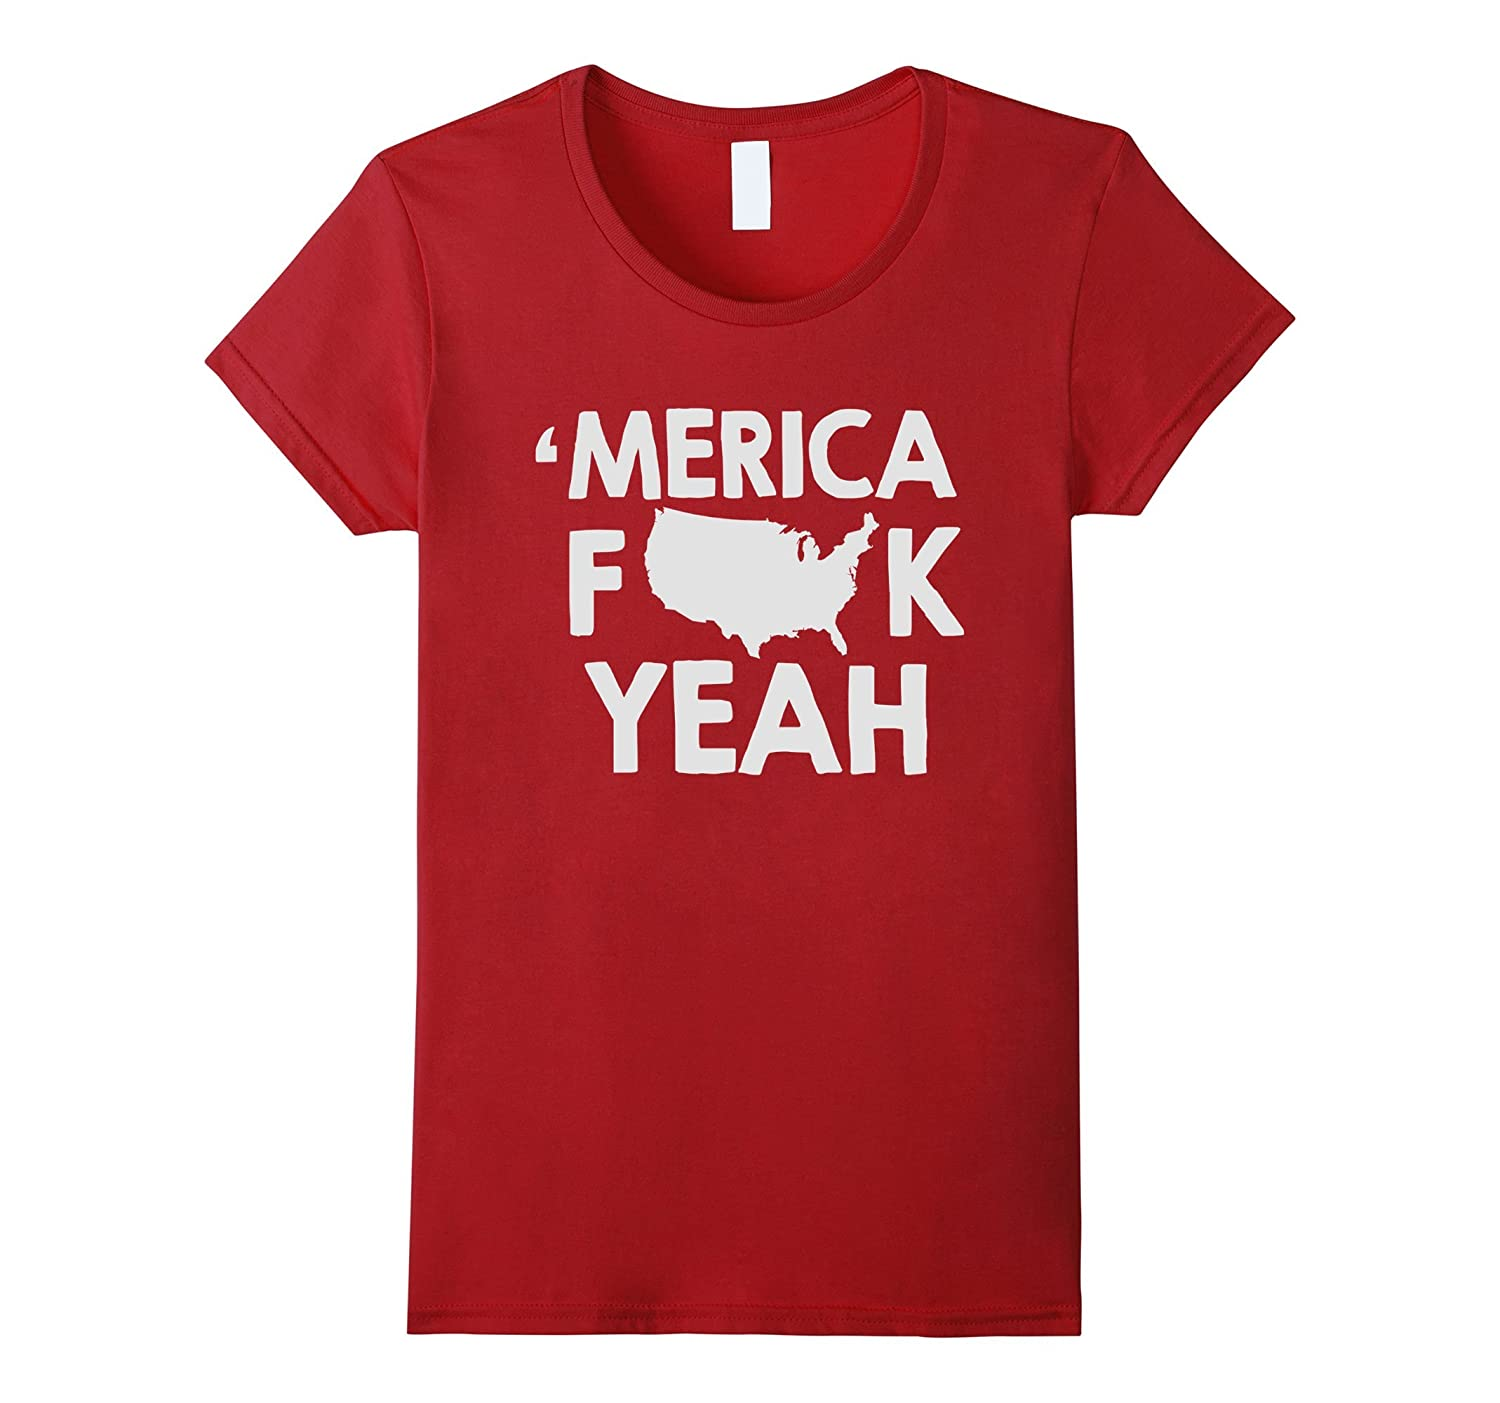 independent day tshirt 'Merica FK yeah independent day tshir-Yolotee